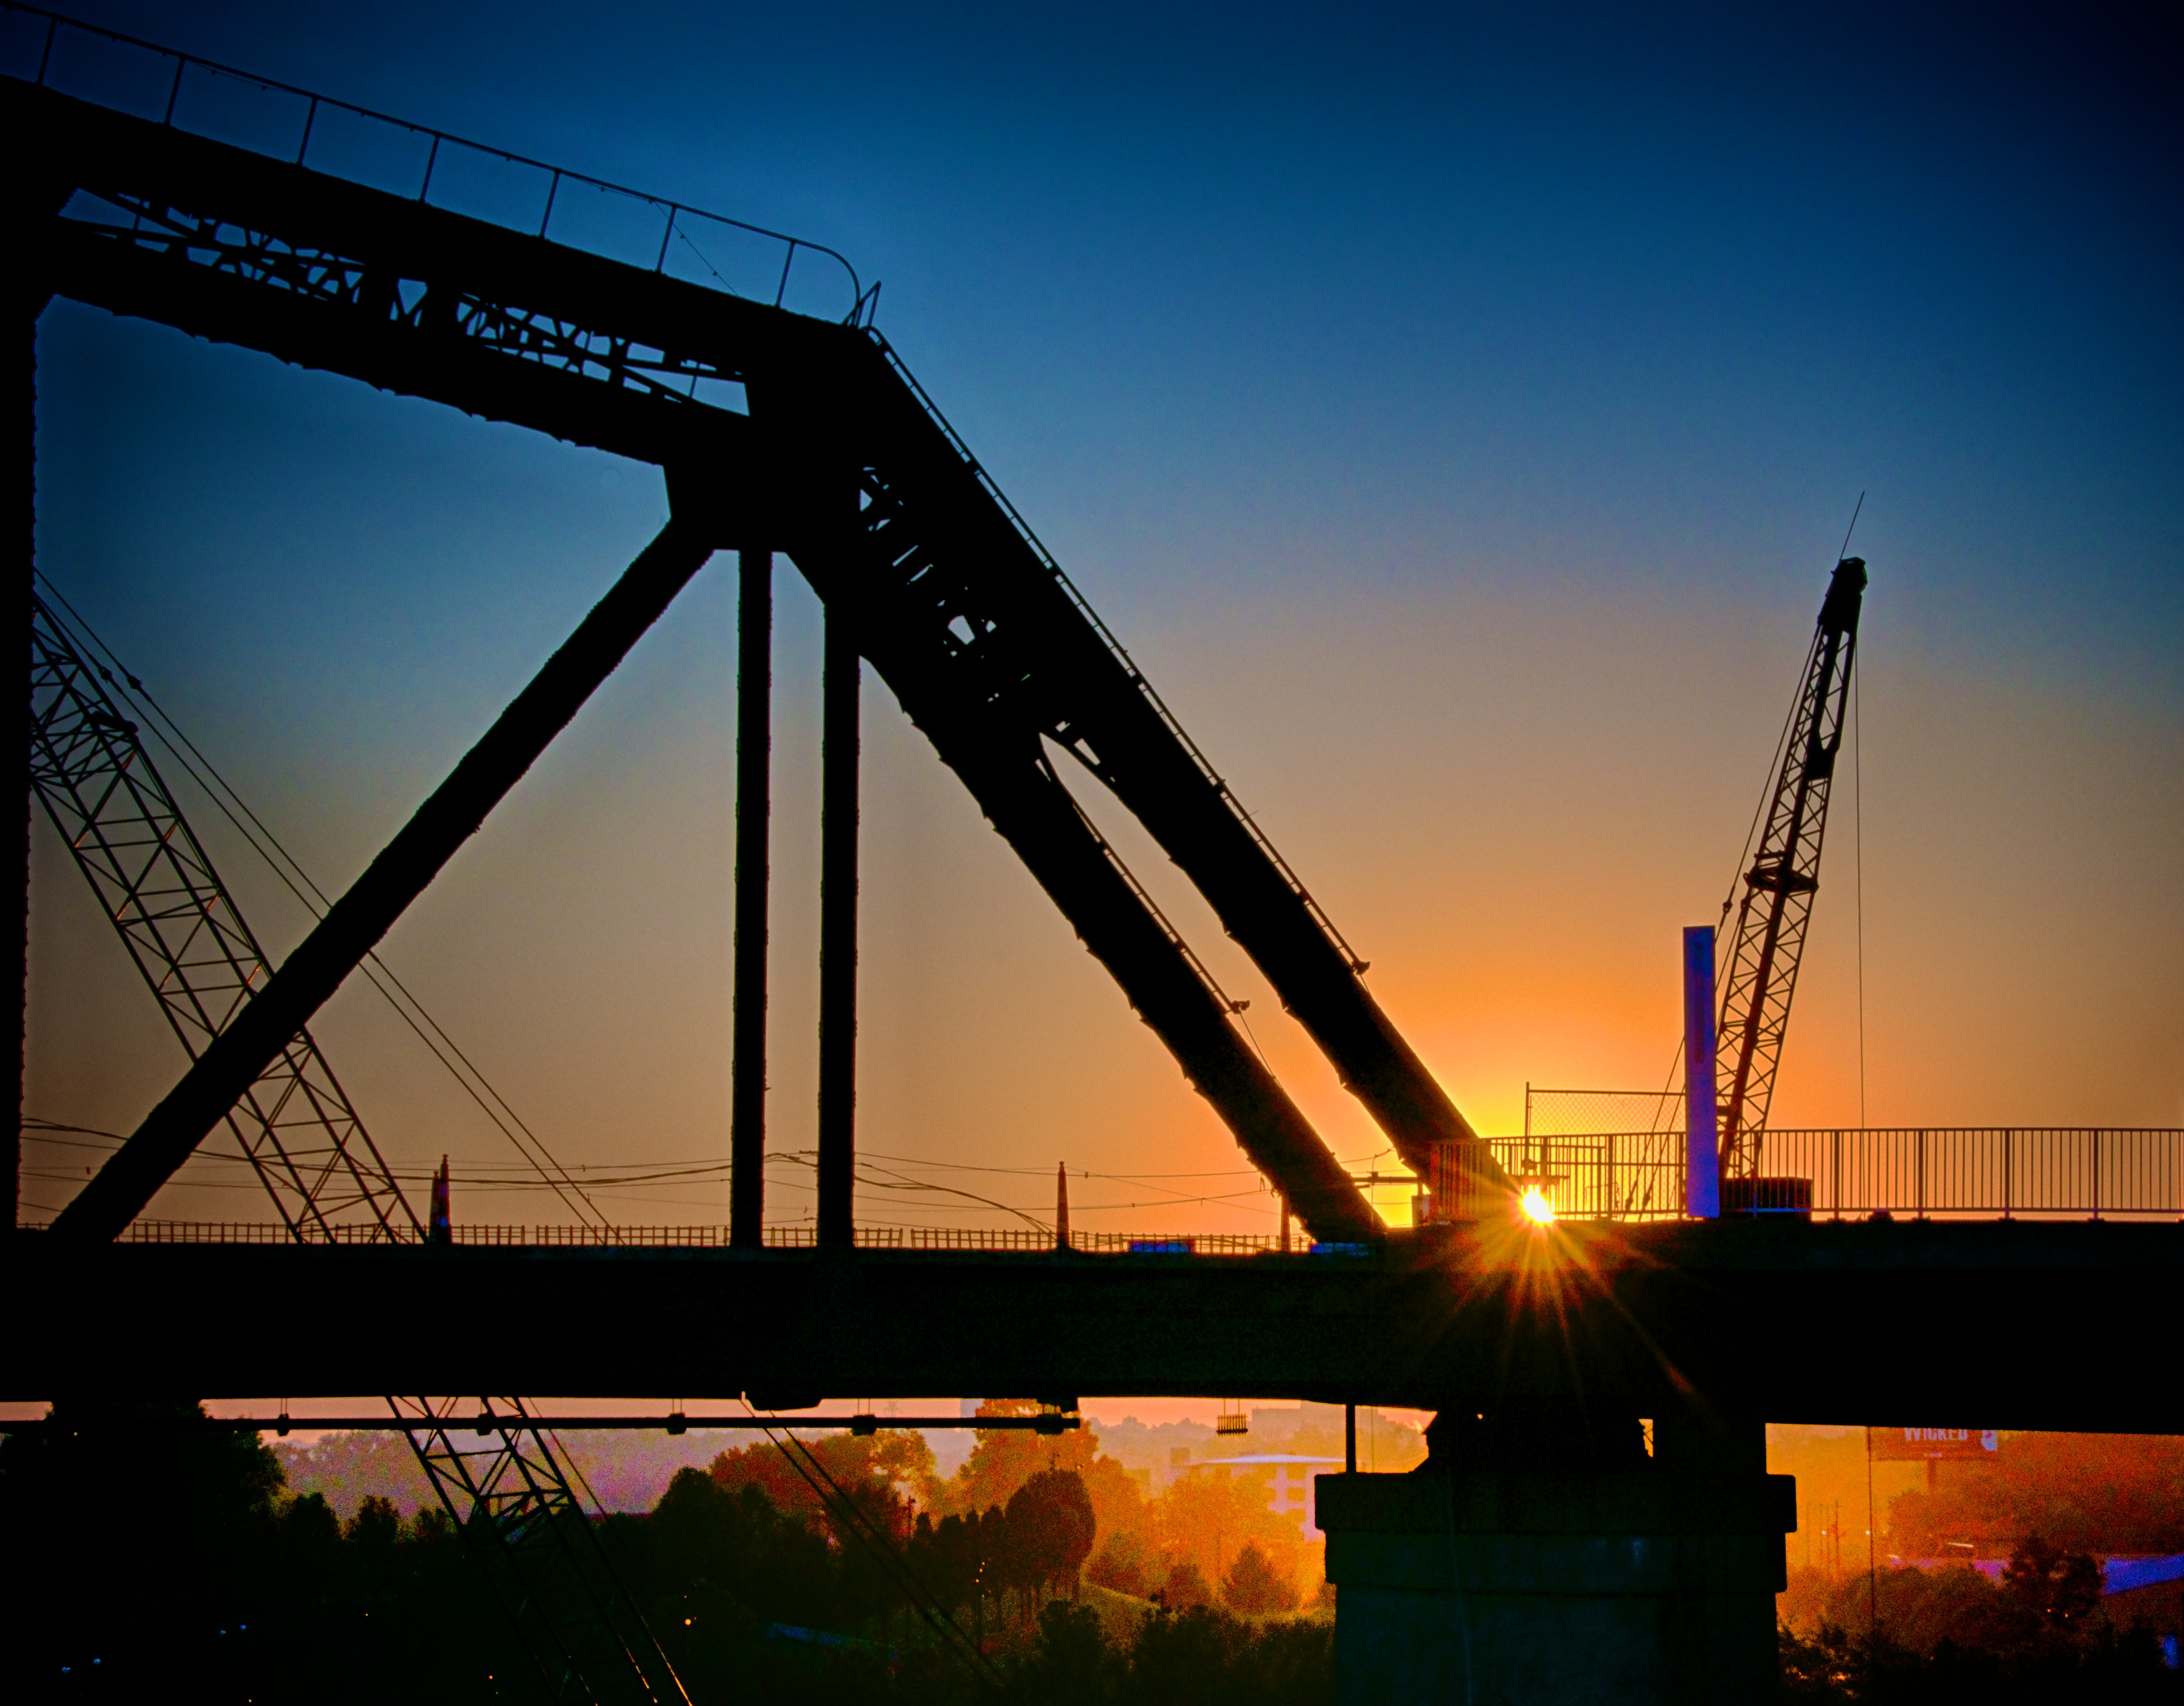 Morning sunrise on the Big Four Bridge jobsite.